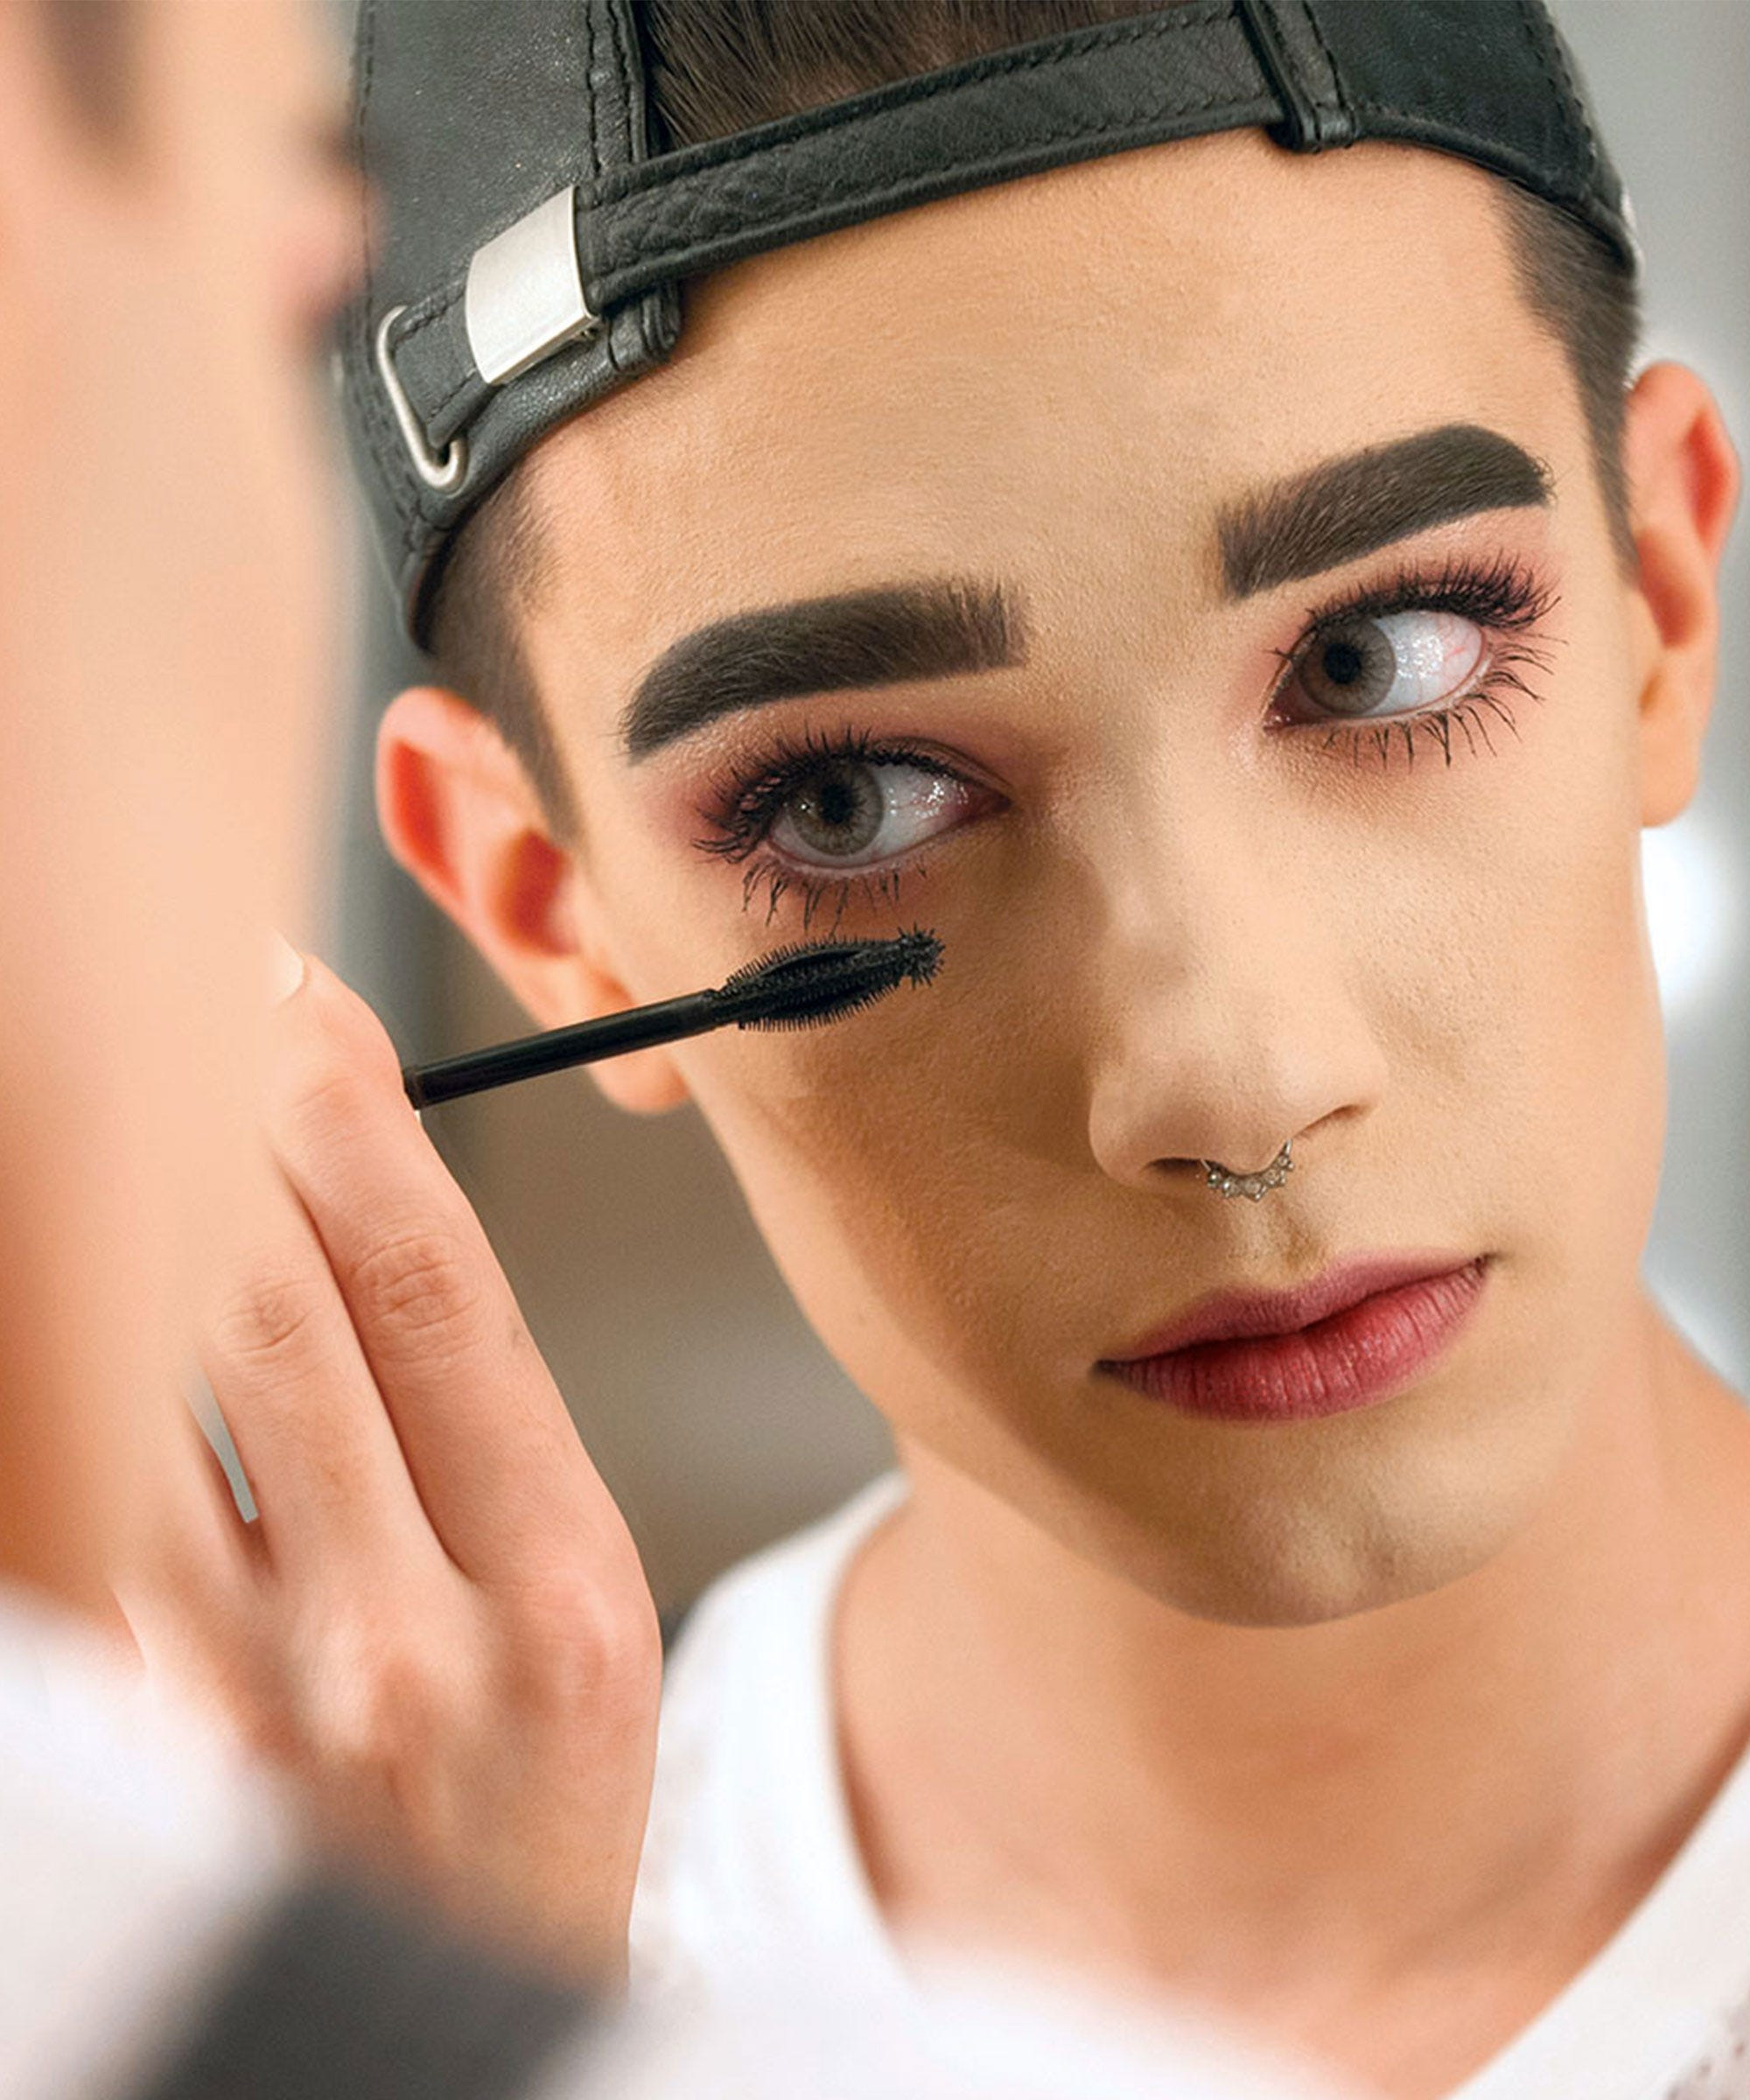 CoverGirl New Male Face Teen Makeup Artist Instagram